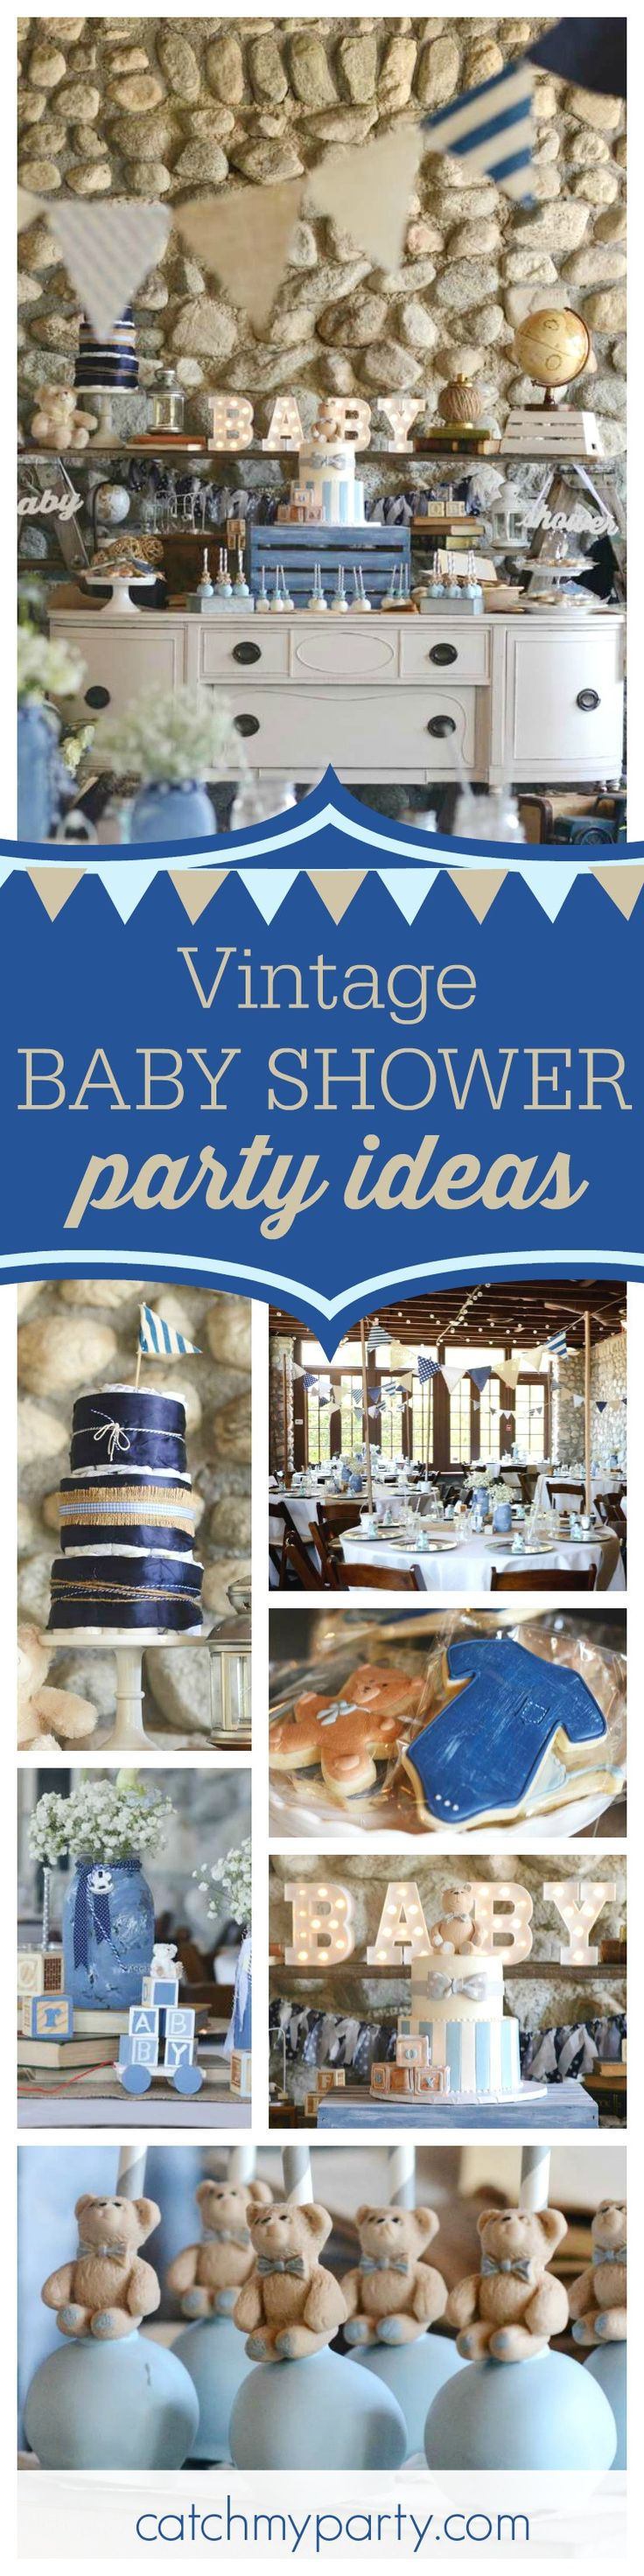 You don't want to miss this gorgeous Vintage Chic Baby Shower! The dessert table is amazing!! See more party ideas and share yours at CatchMyParty.com